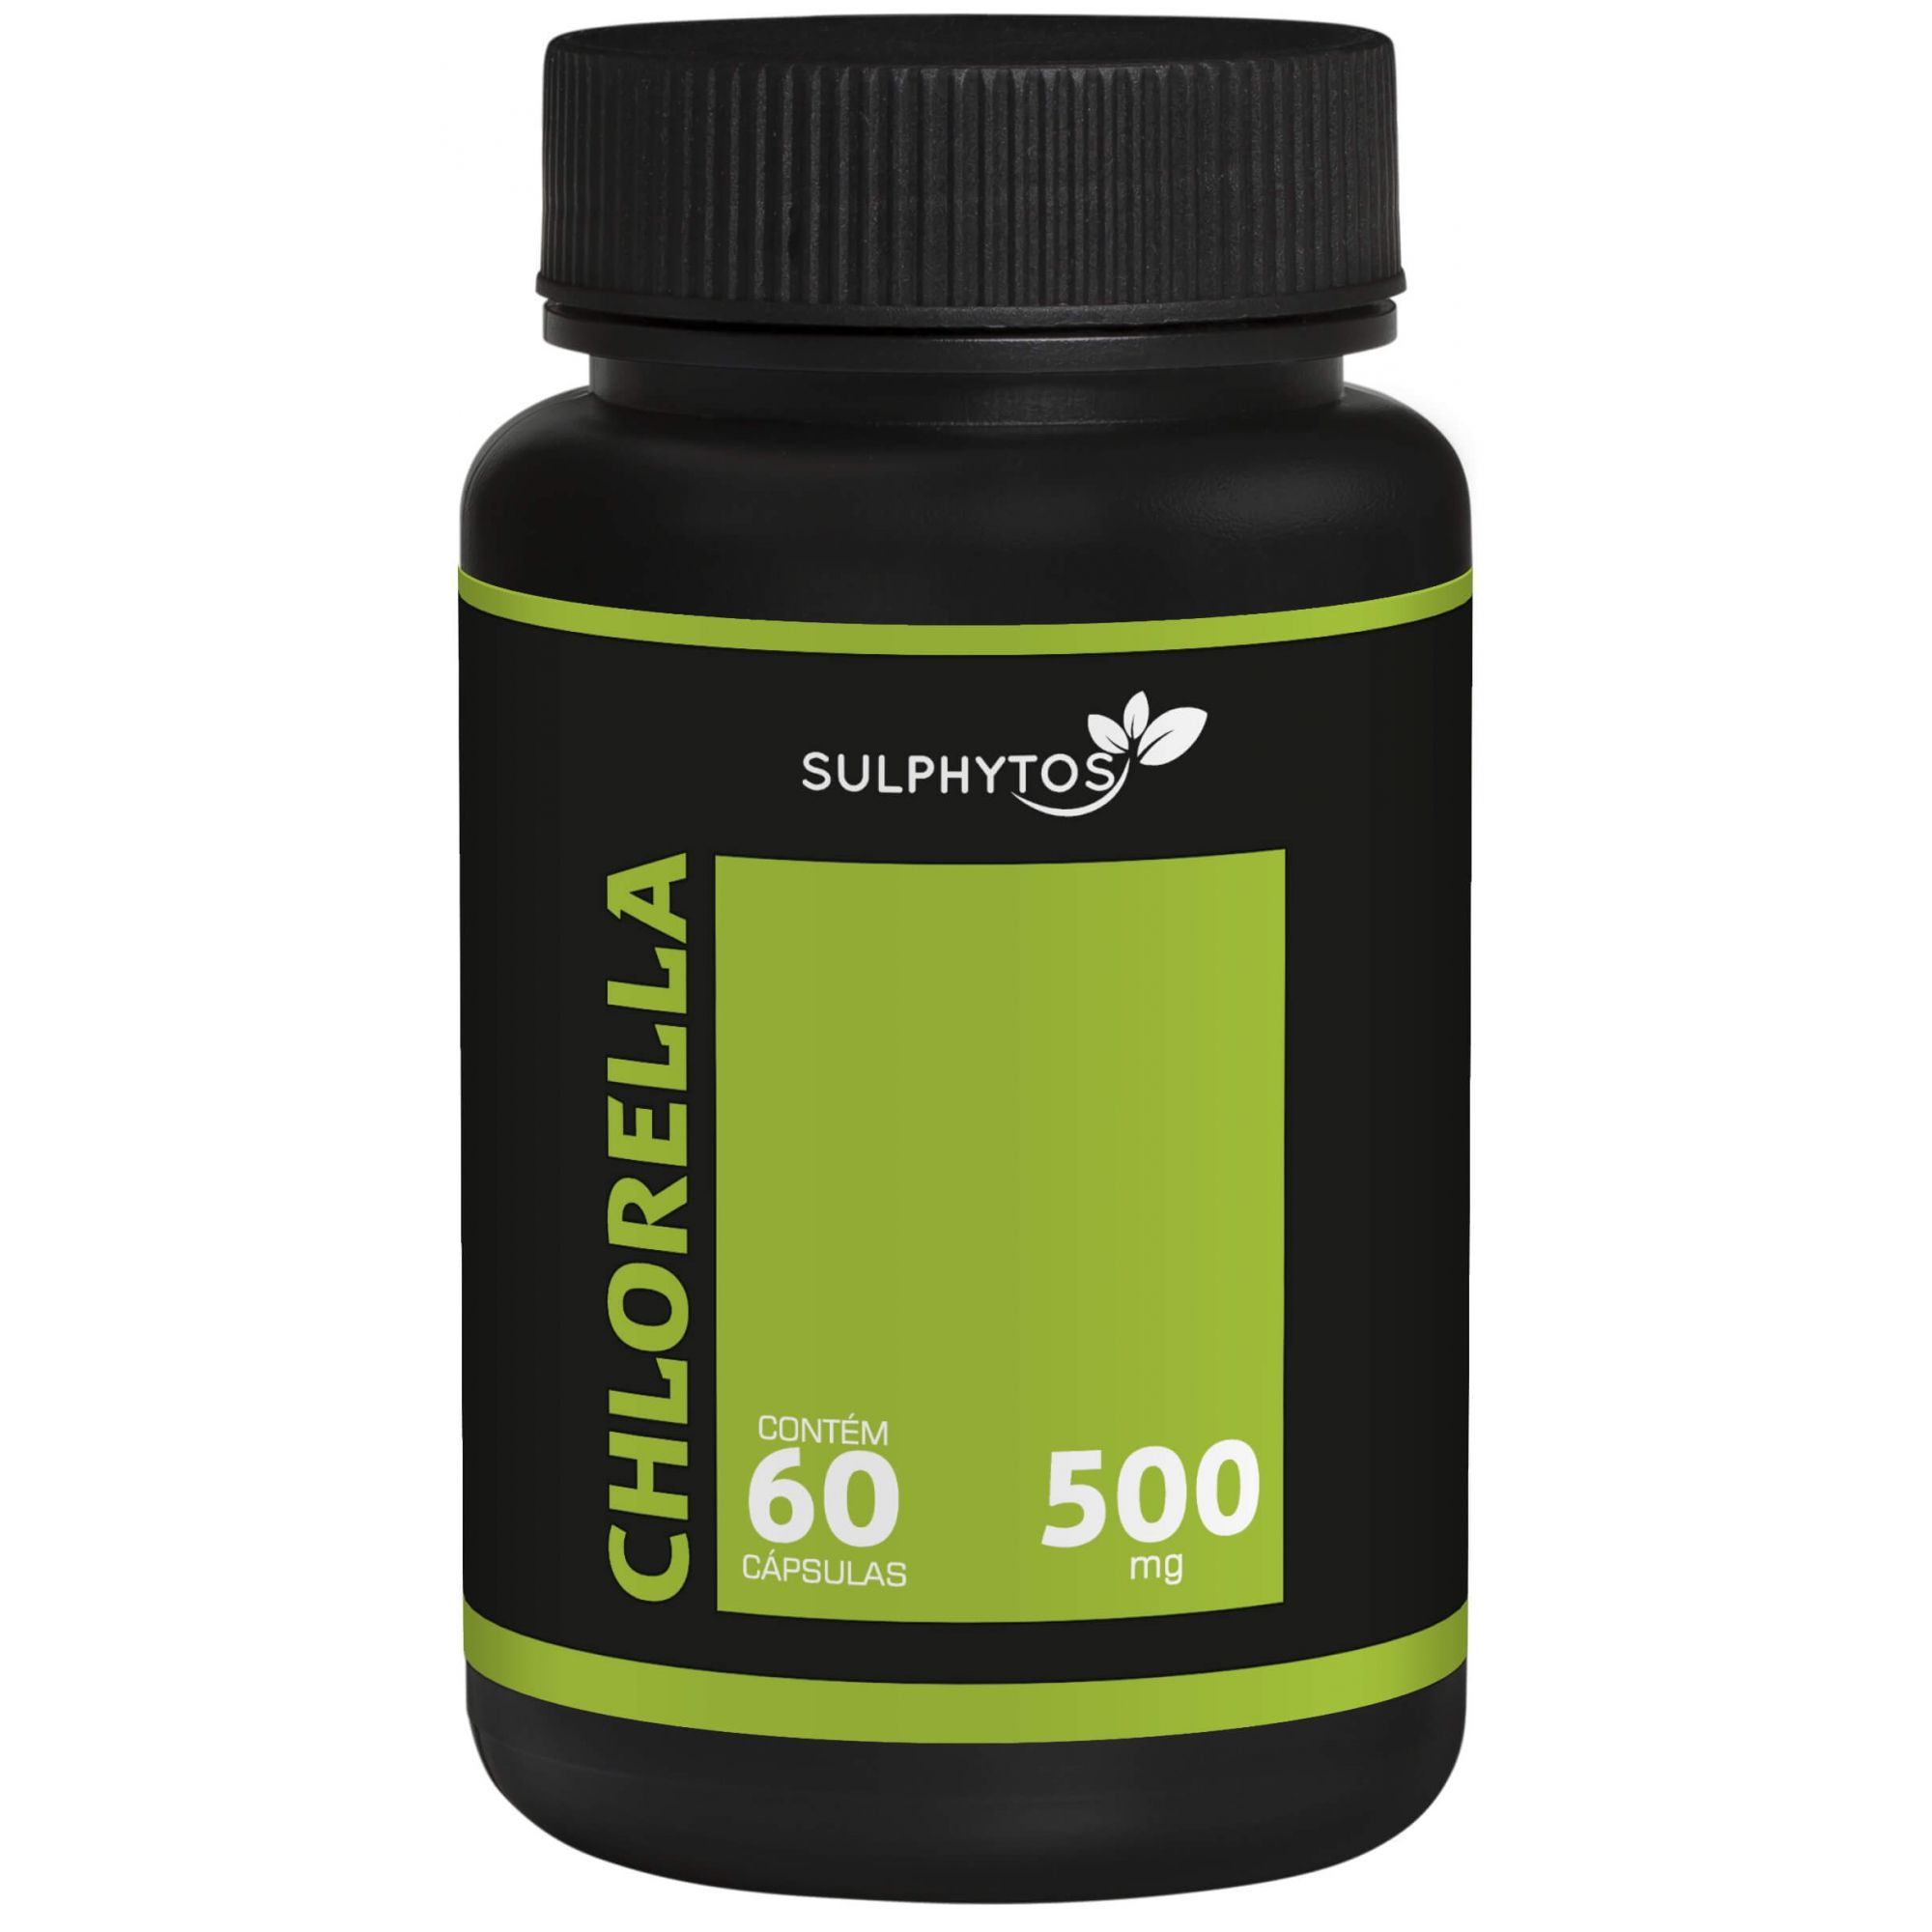 Chlorella 500mg Sulphytos - 60 caps